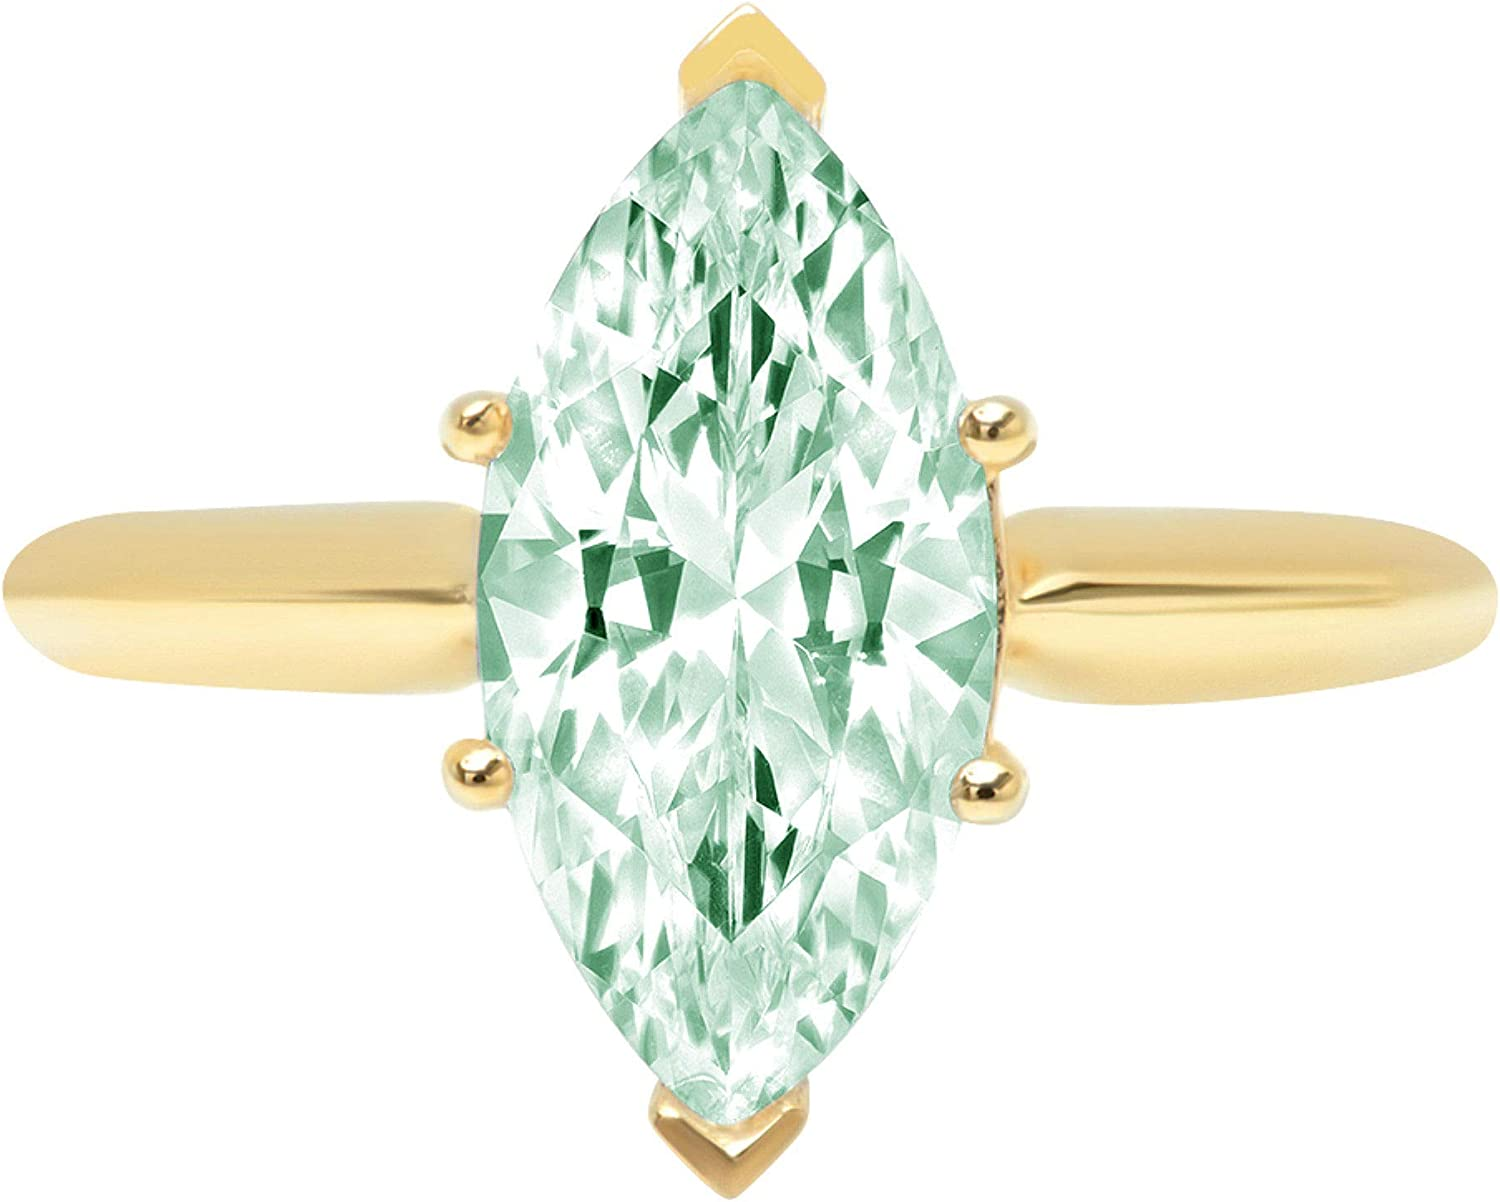 2.4ct Brilliant Marquise Cut Solitaire Light Sea Green Simulated Diamond Cubic Zirconia Ideal VVS1 D 6-Prong Engagement Wedding Bridal Promise Anniversary Ring Solid 14k Yellow Gold for Women